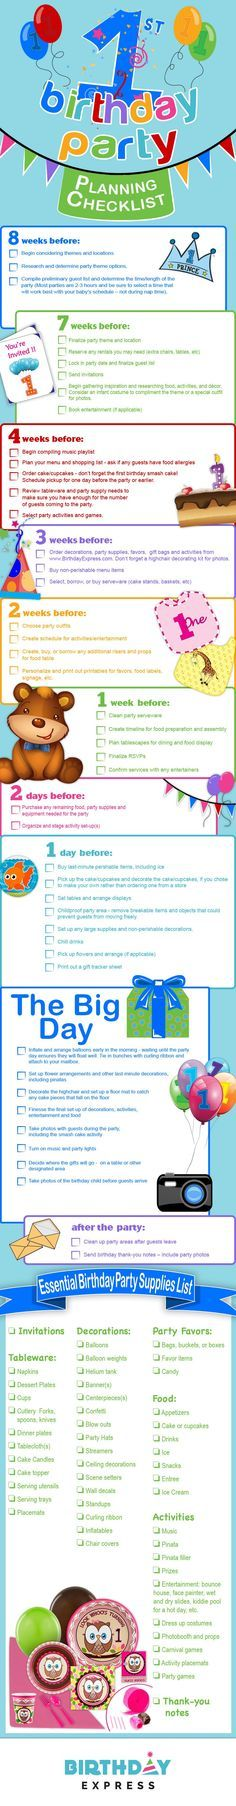 Kids Birthday Party Printable Checklist  House Mix Kids